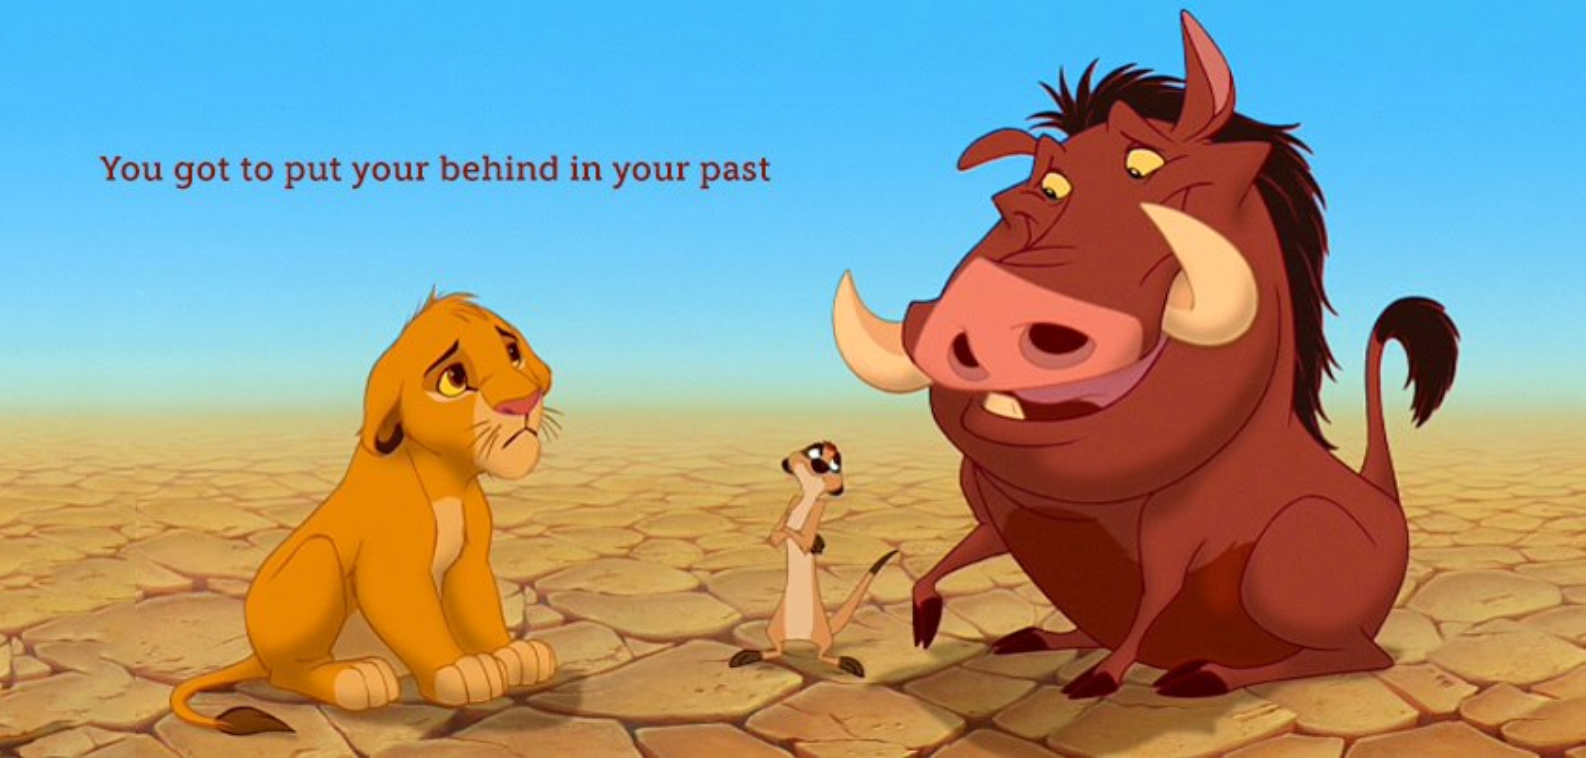 Defeat regret! Or just re-watch a lot of  Disney  movies.